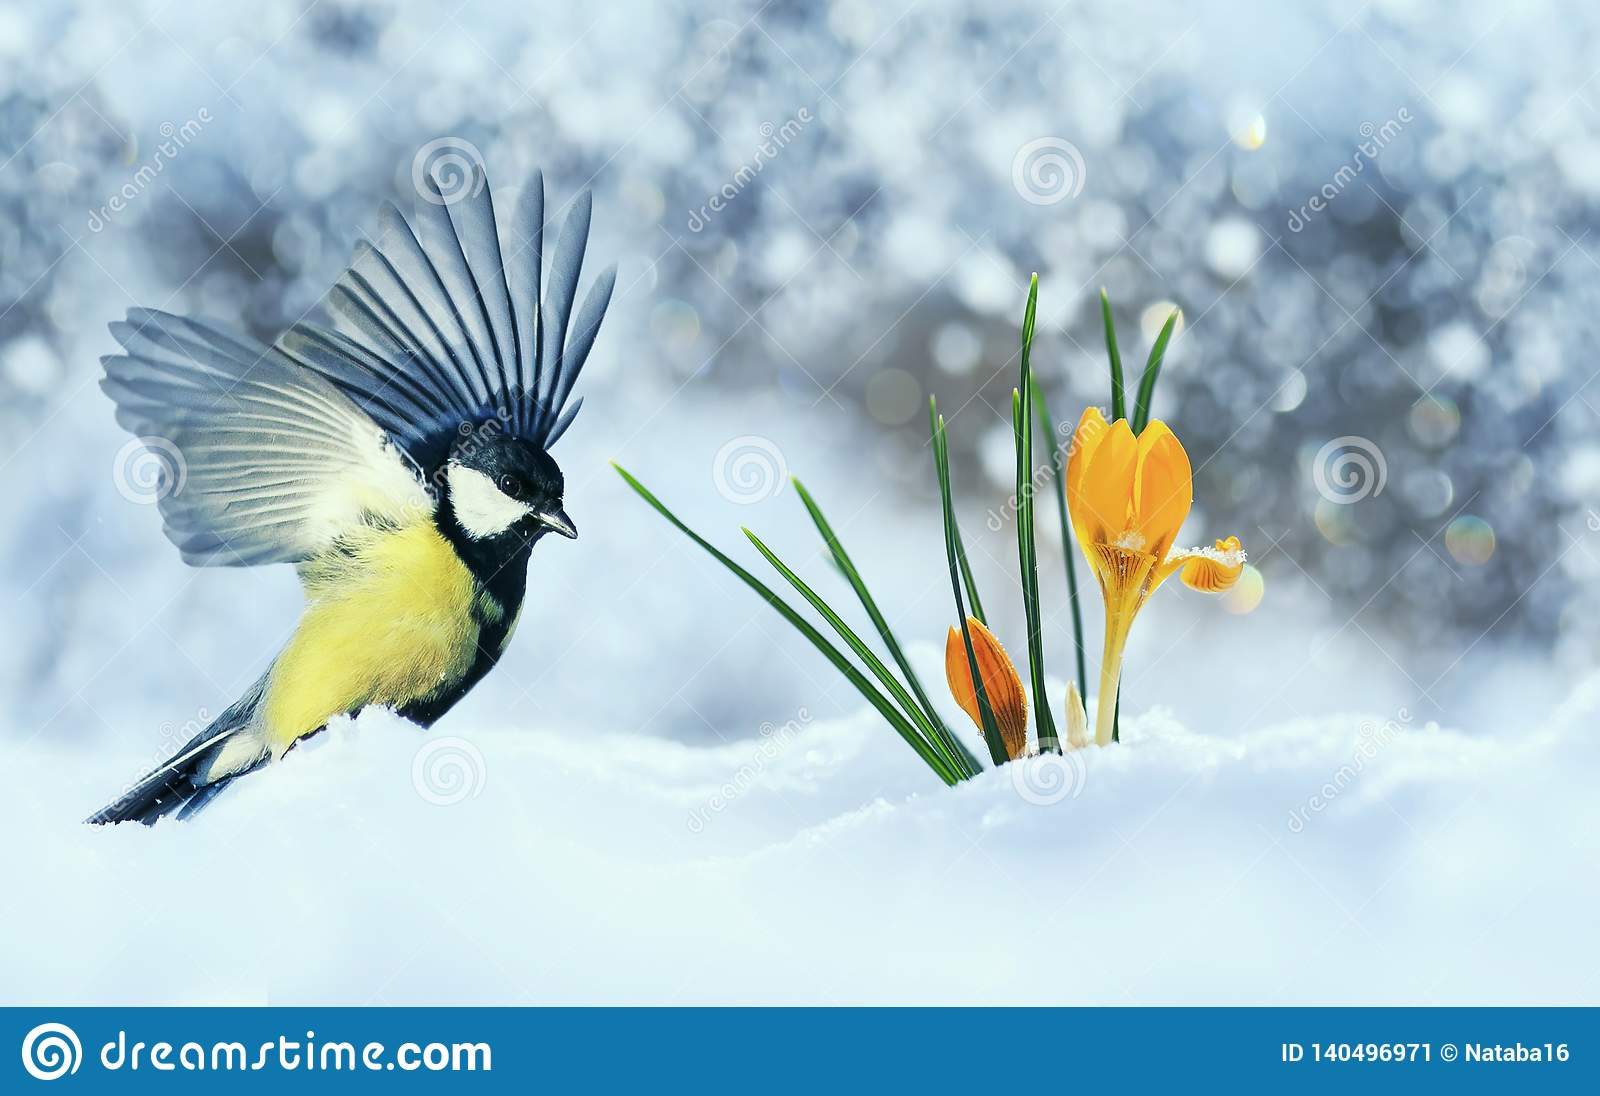 Beautiful holiday card with bird tit flew widely spreading its wings to the first delicate yellow flowers crocuses making their